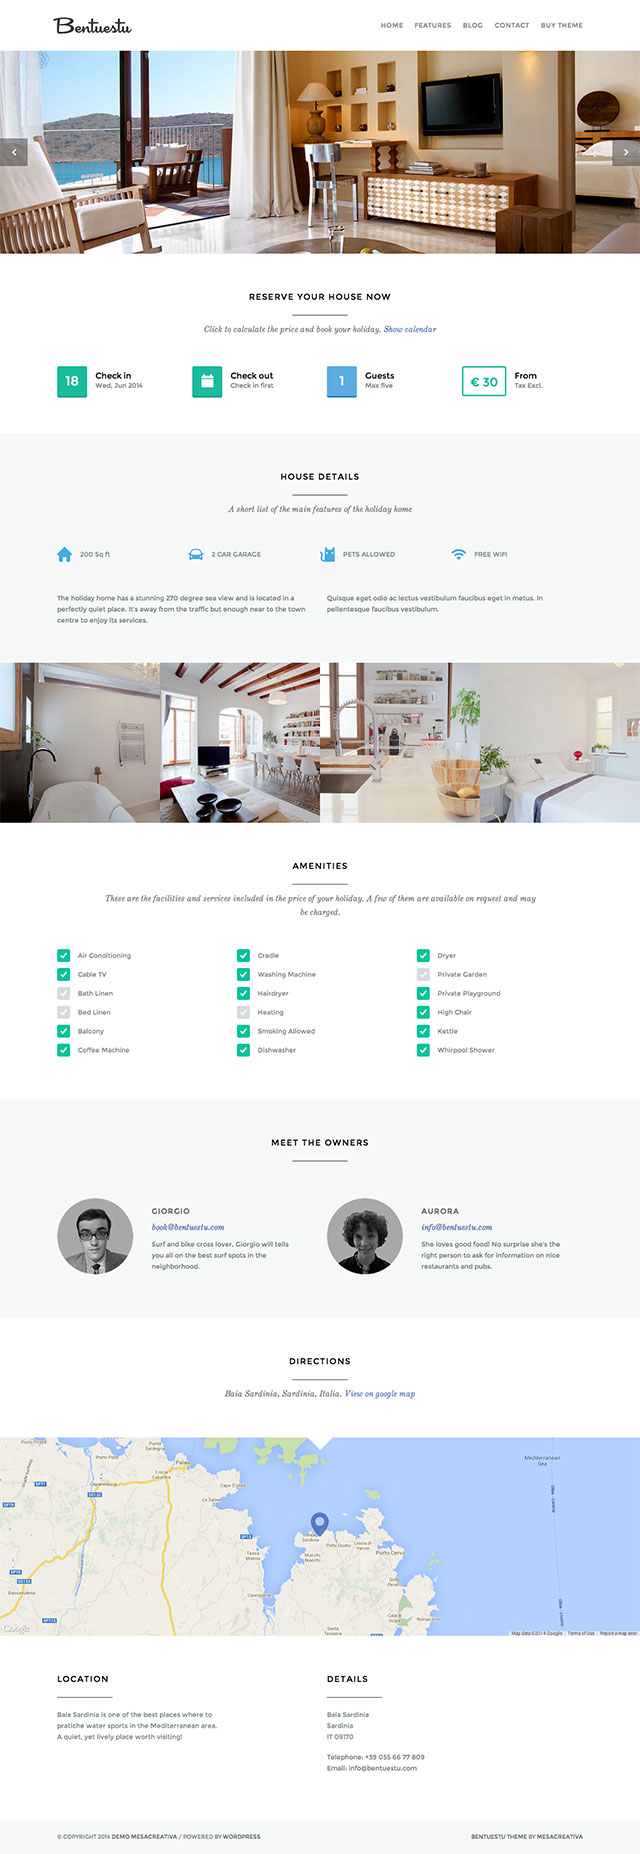 real-estate-wordpress-theme-Bentuestu